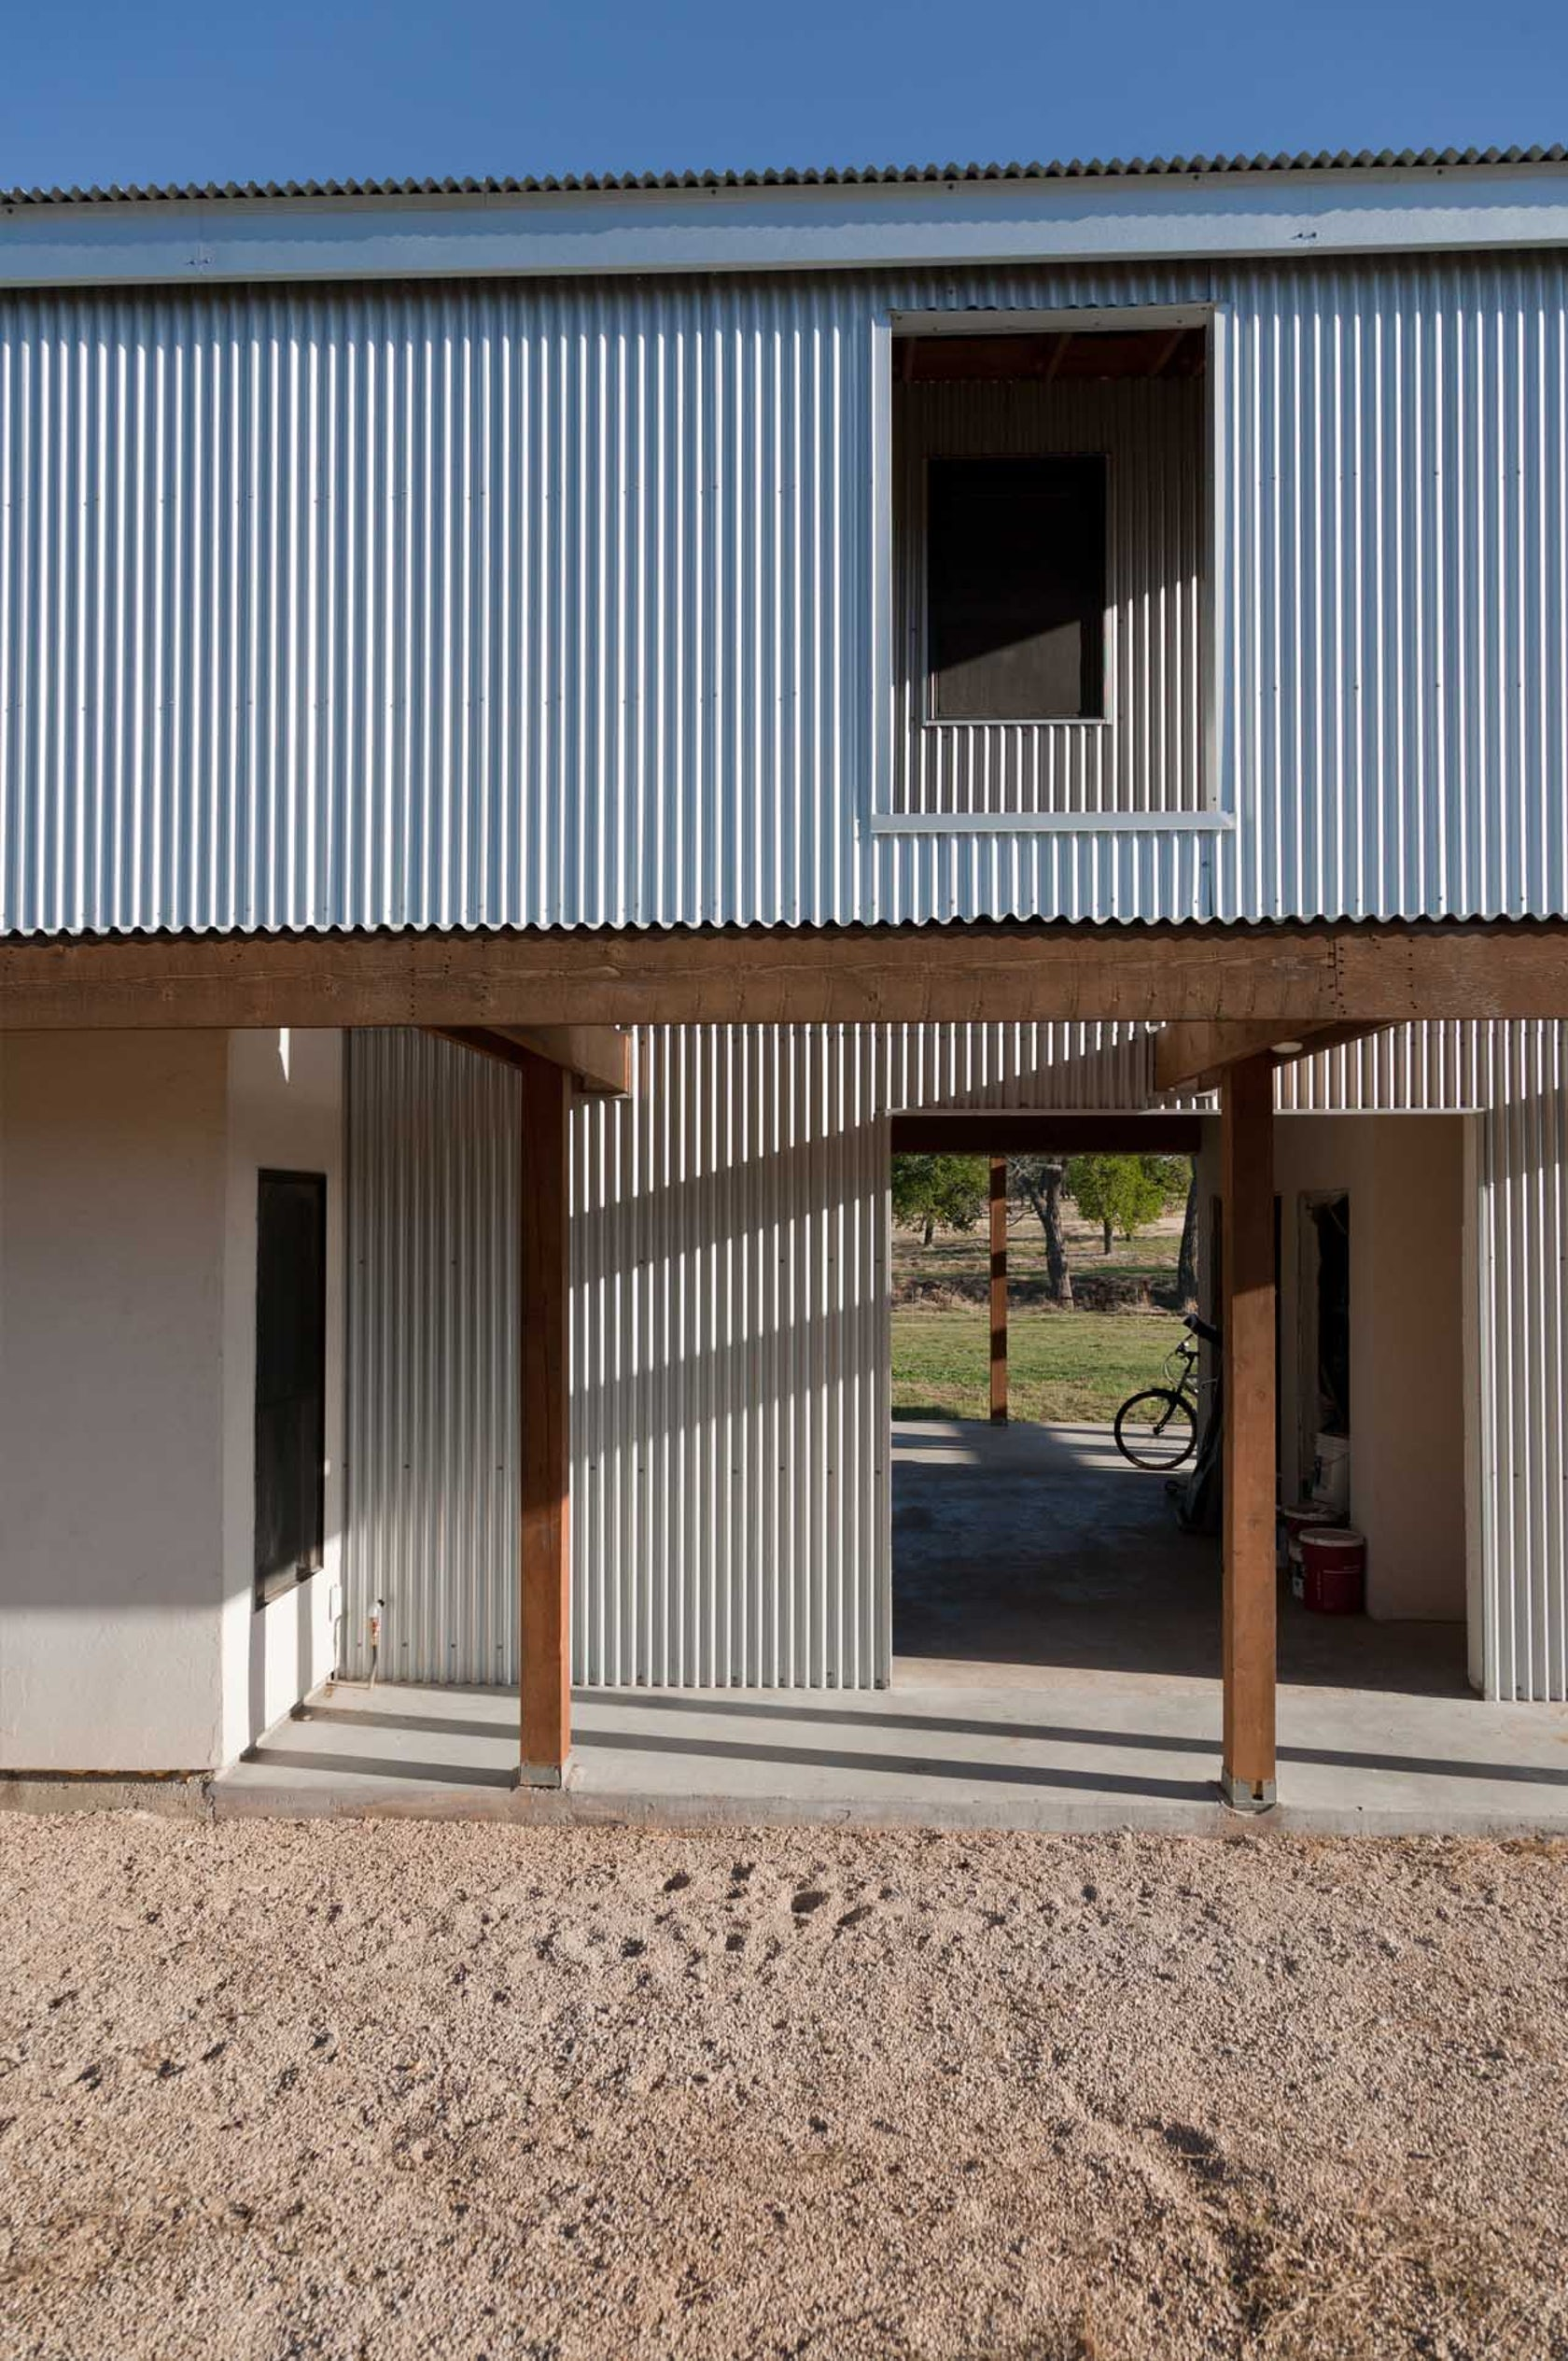 The Shiny Yet Rugged Appeal Of Corrugated Sheet Metal